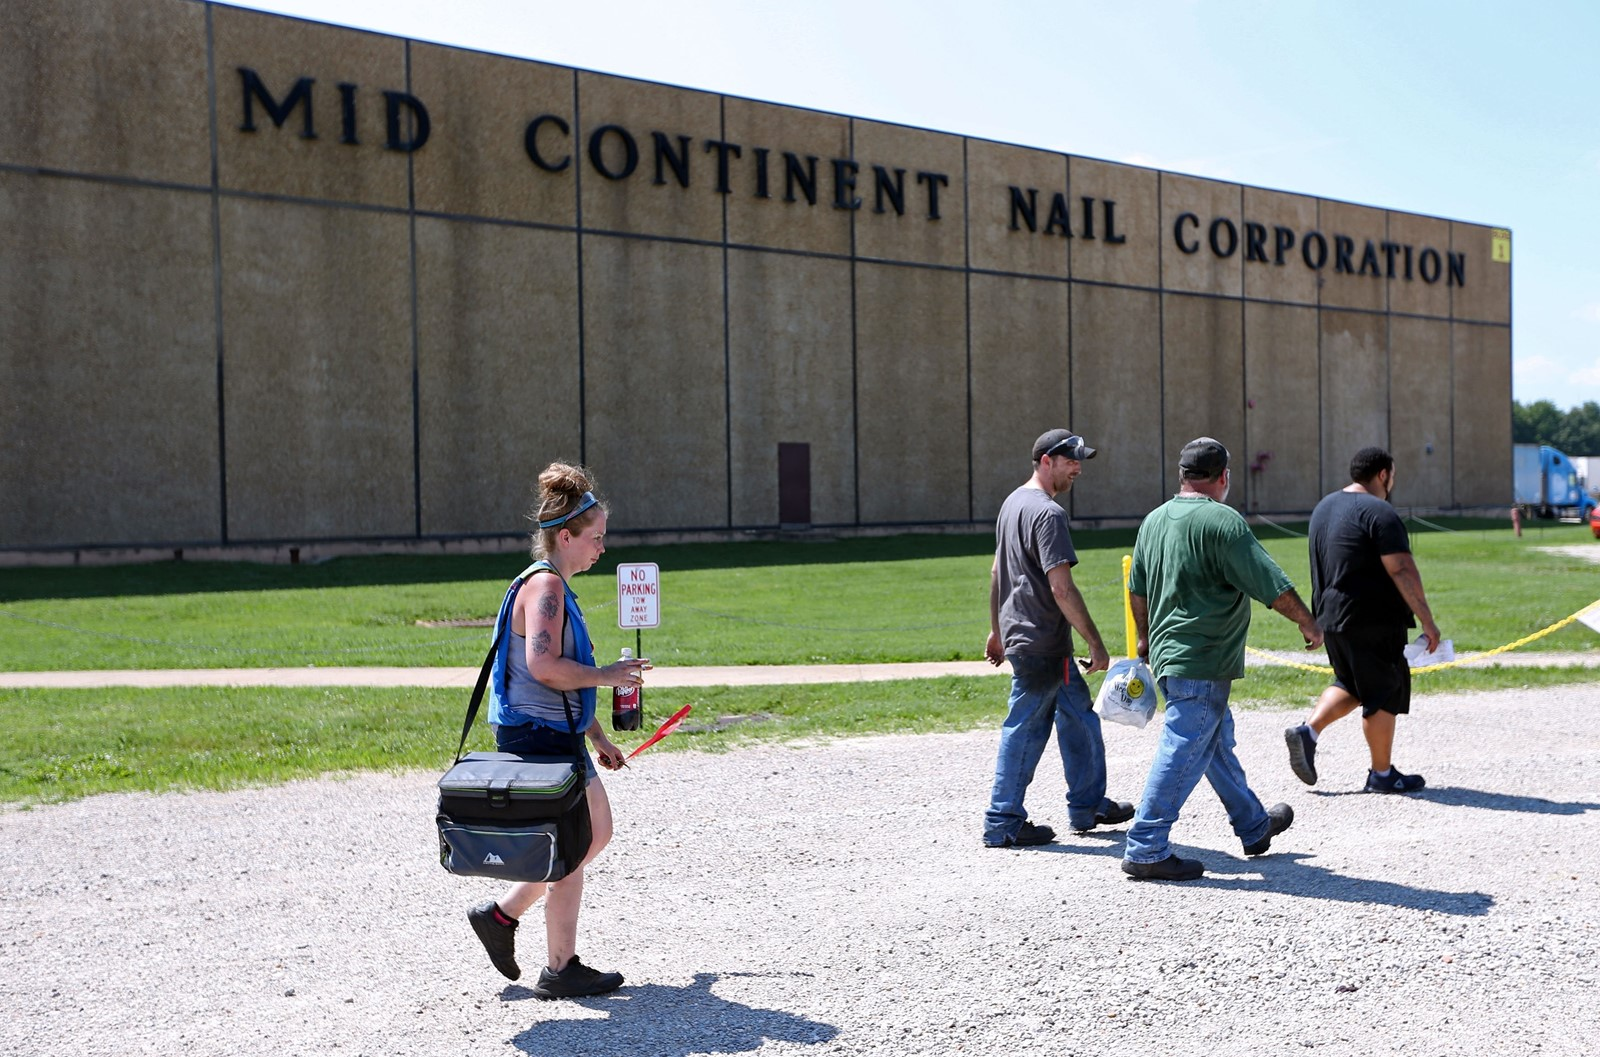 Mid Continent Nail Corporation, now Mexican-owned, is the second-largest employer in Poplar Bluff, Missouri. — Photograph: Bill Greenblatt/Agence France-Presse/Getty Images.